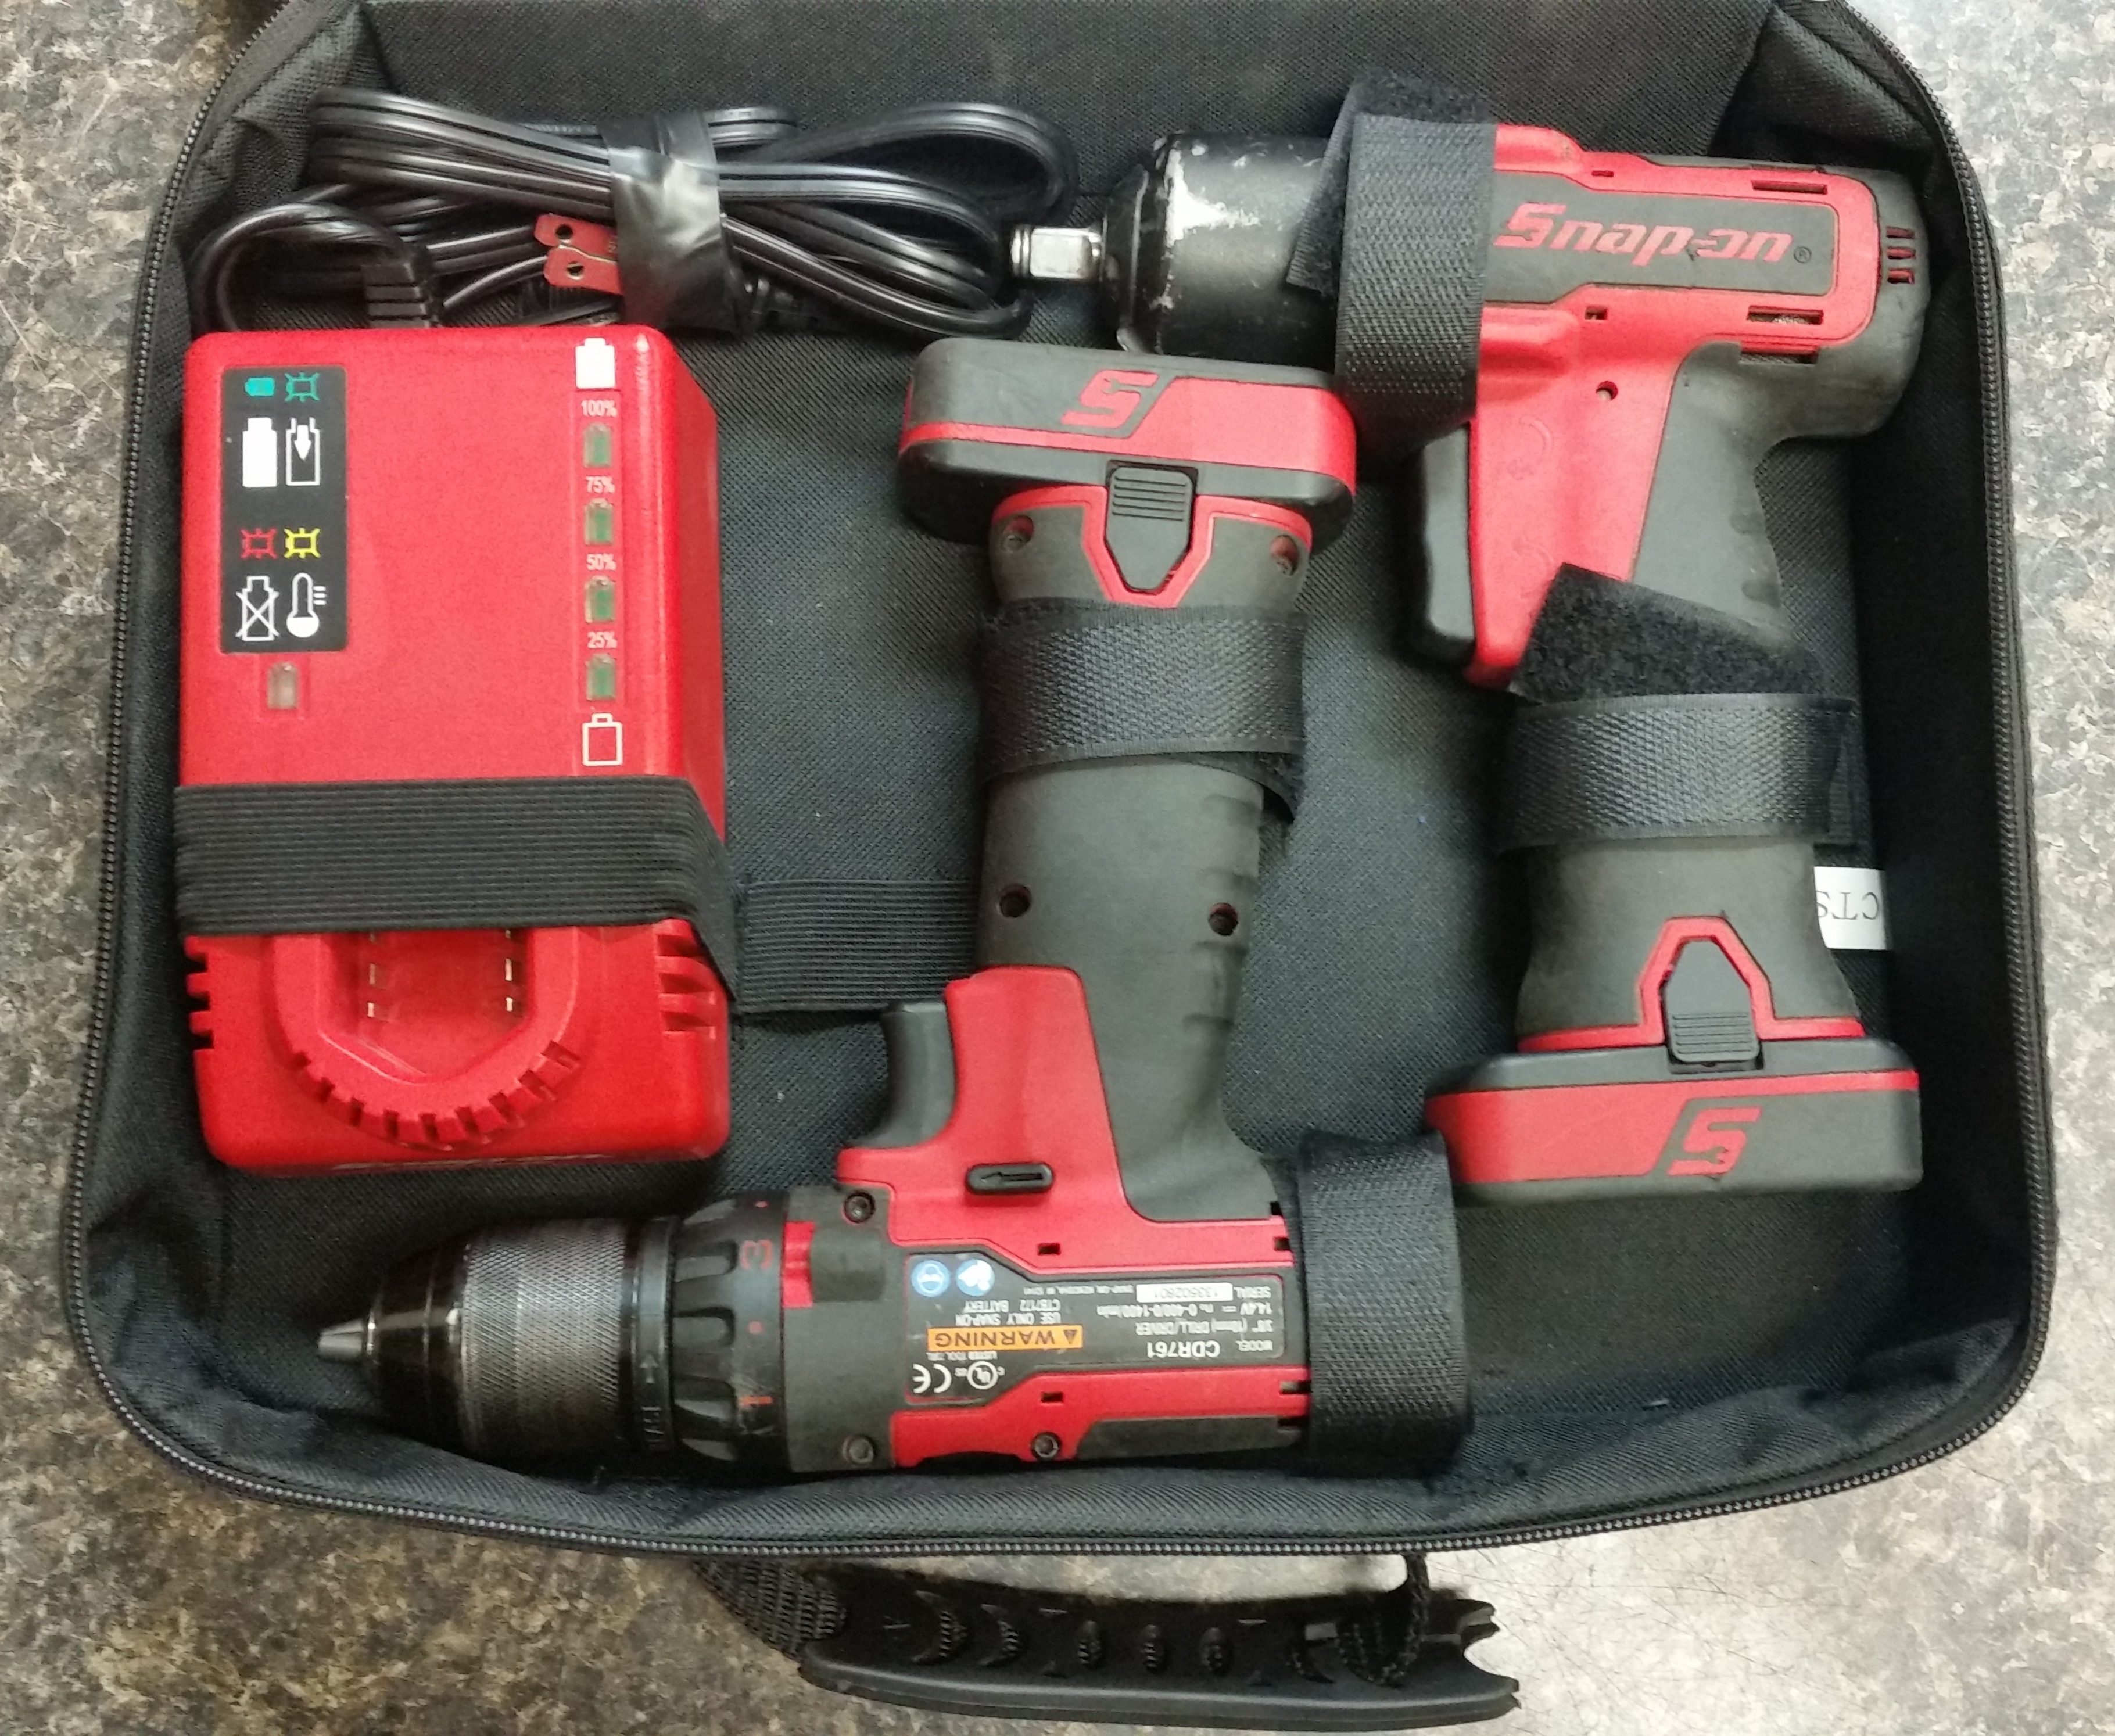 SNAP-ON - CT761 CDR761 - 5 PC DRILL COMBO TOOLS